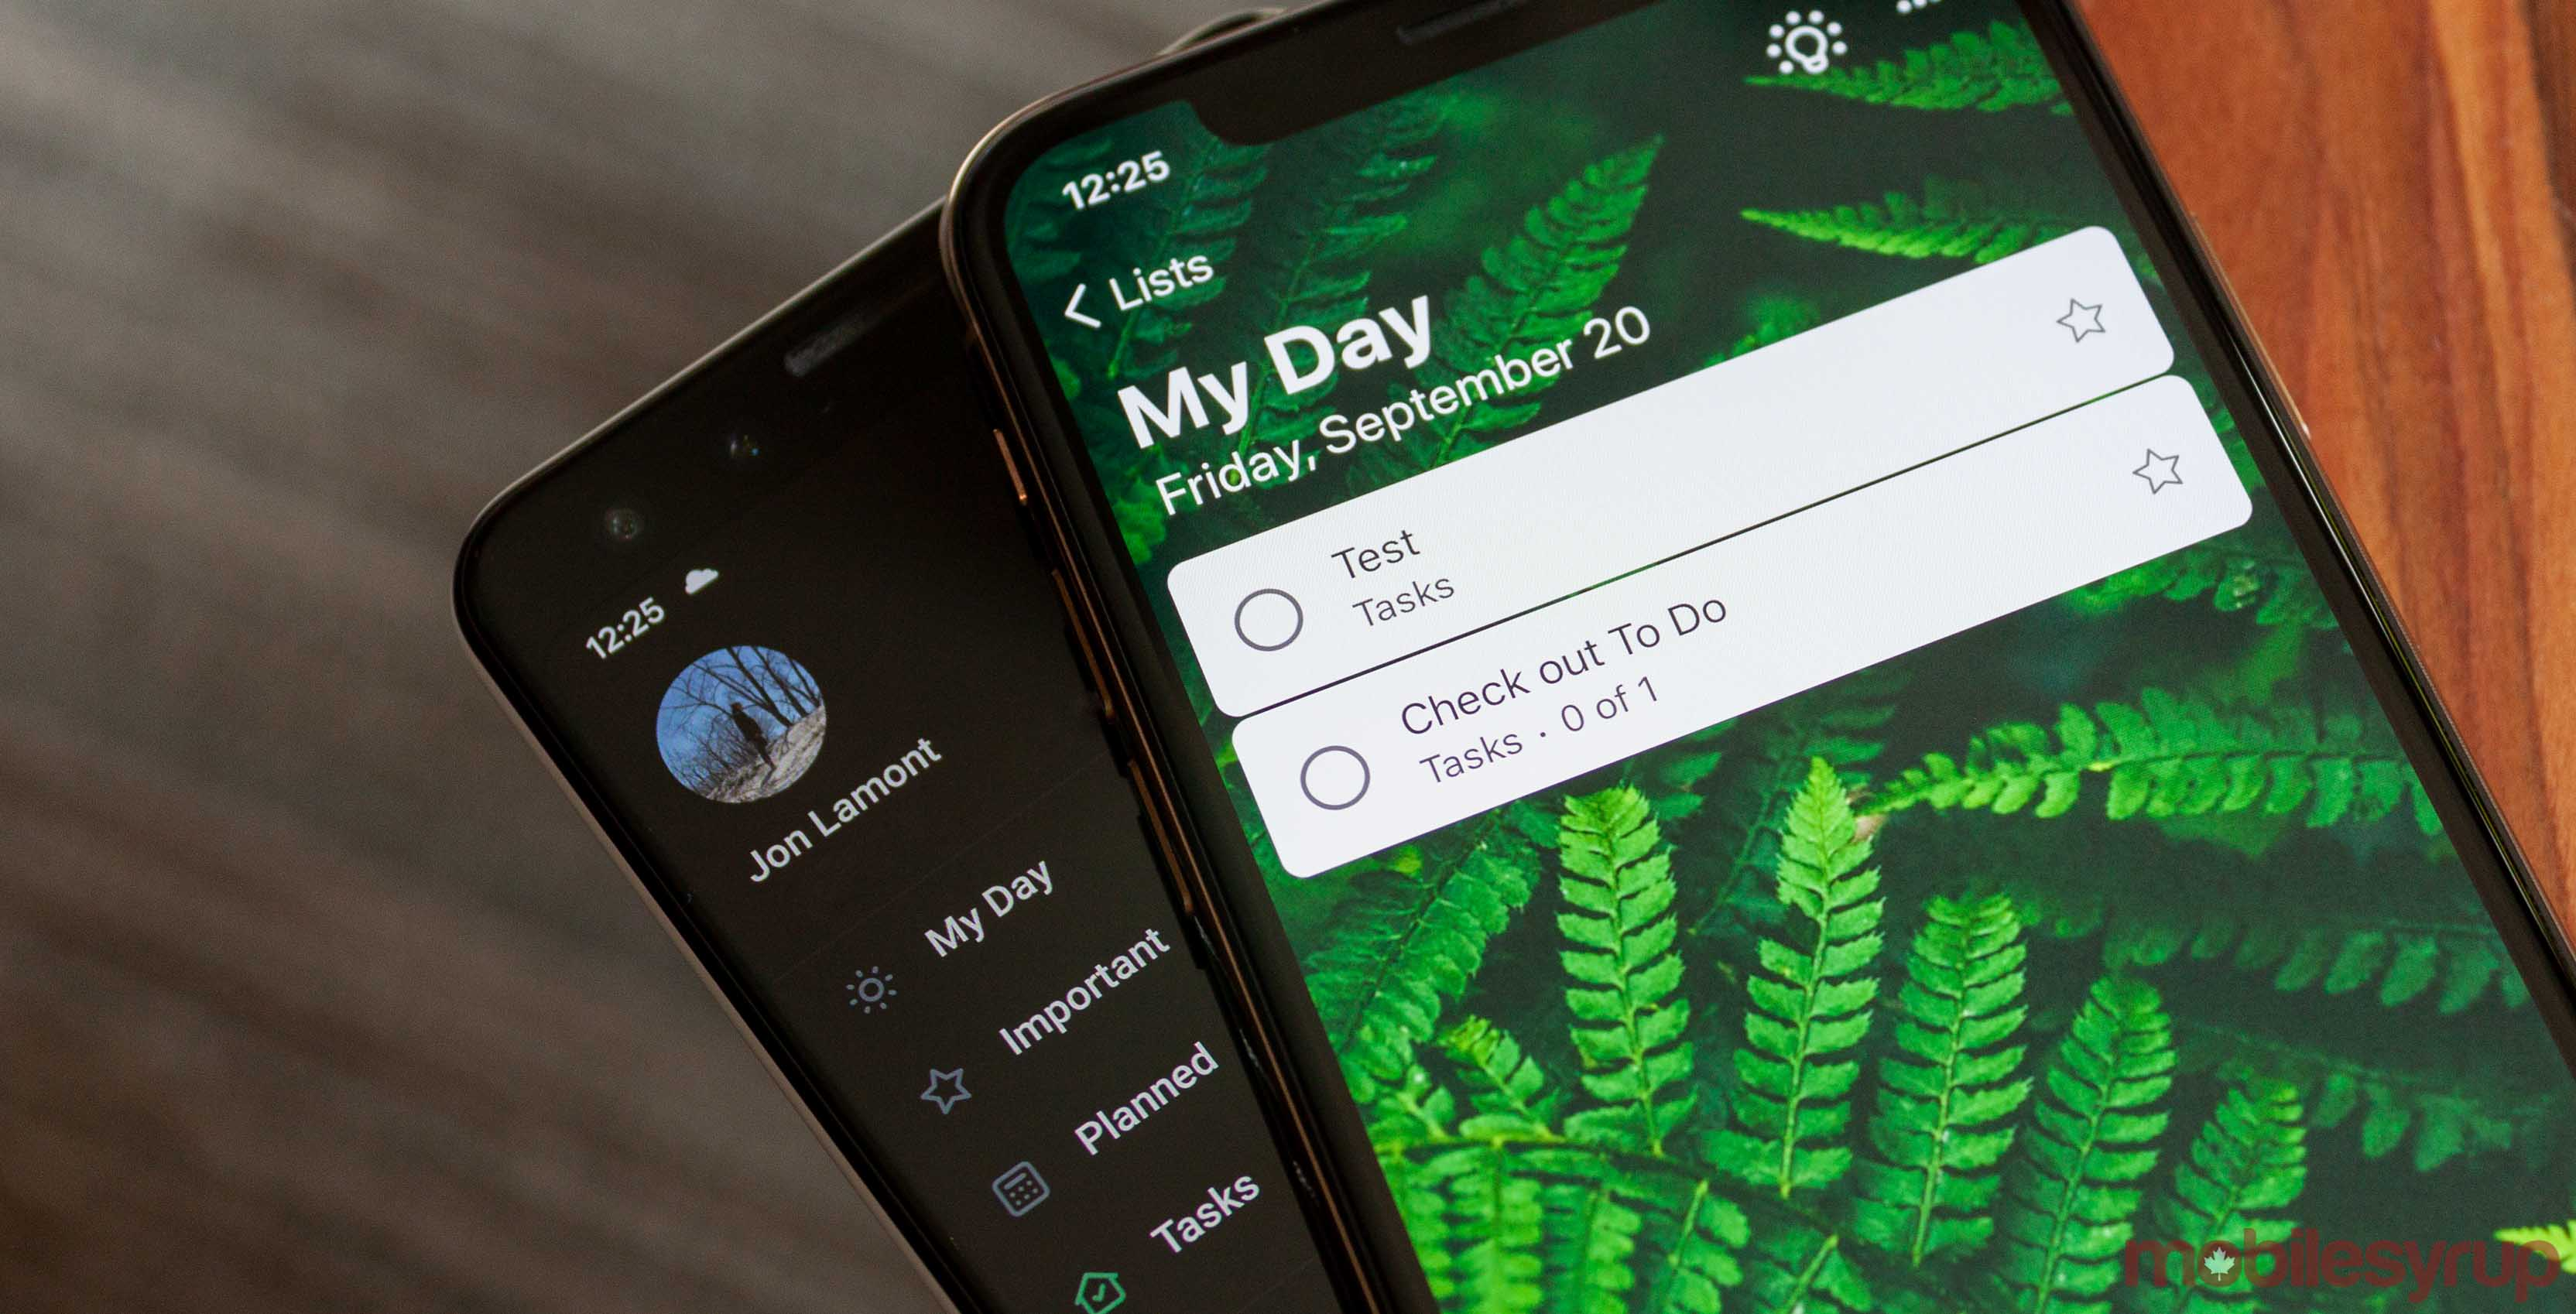 Turn 'to-dos' into 'dones' with Microsoft's stylish To Do app [App of the Week]